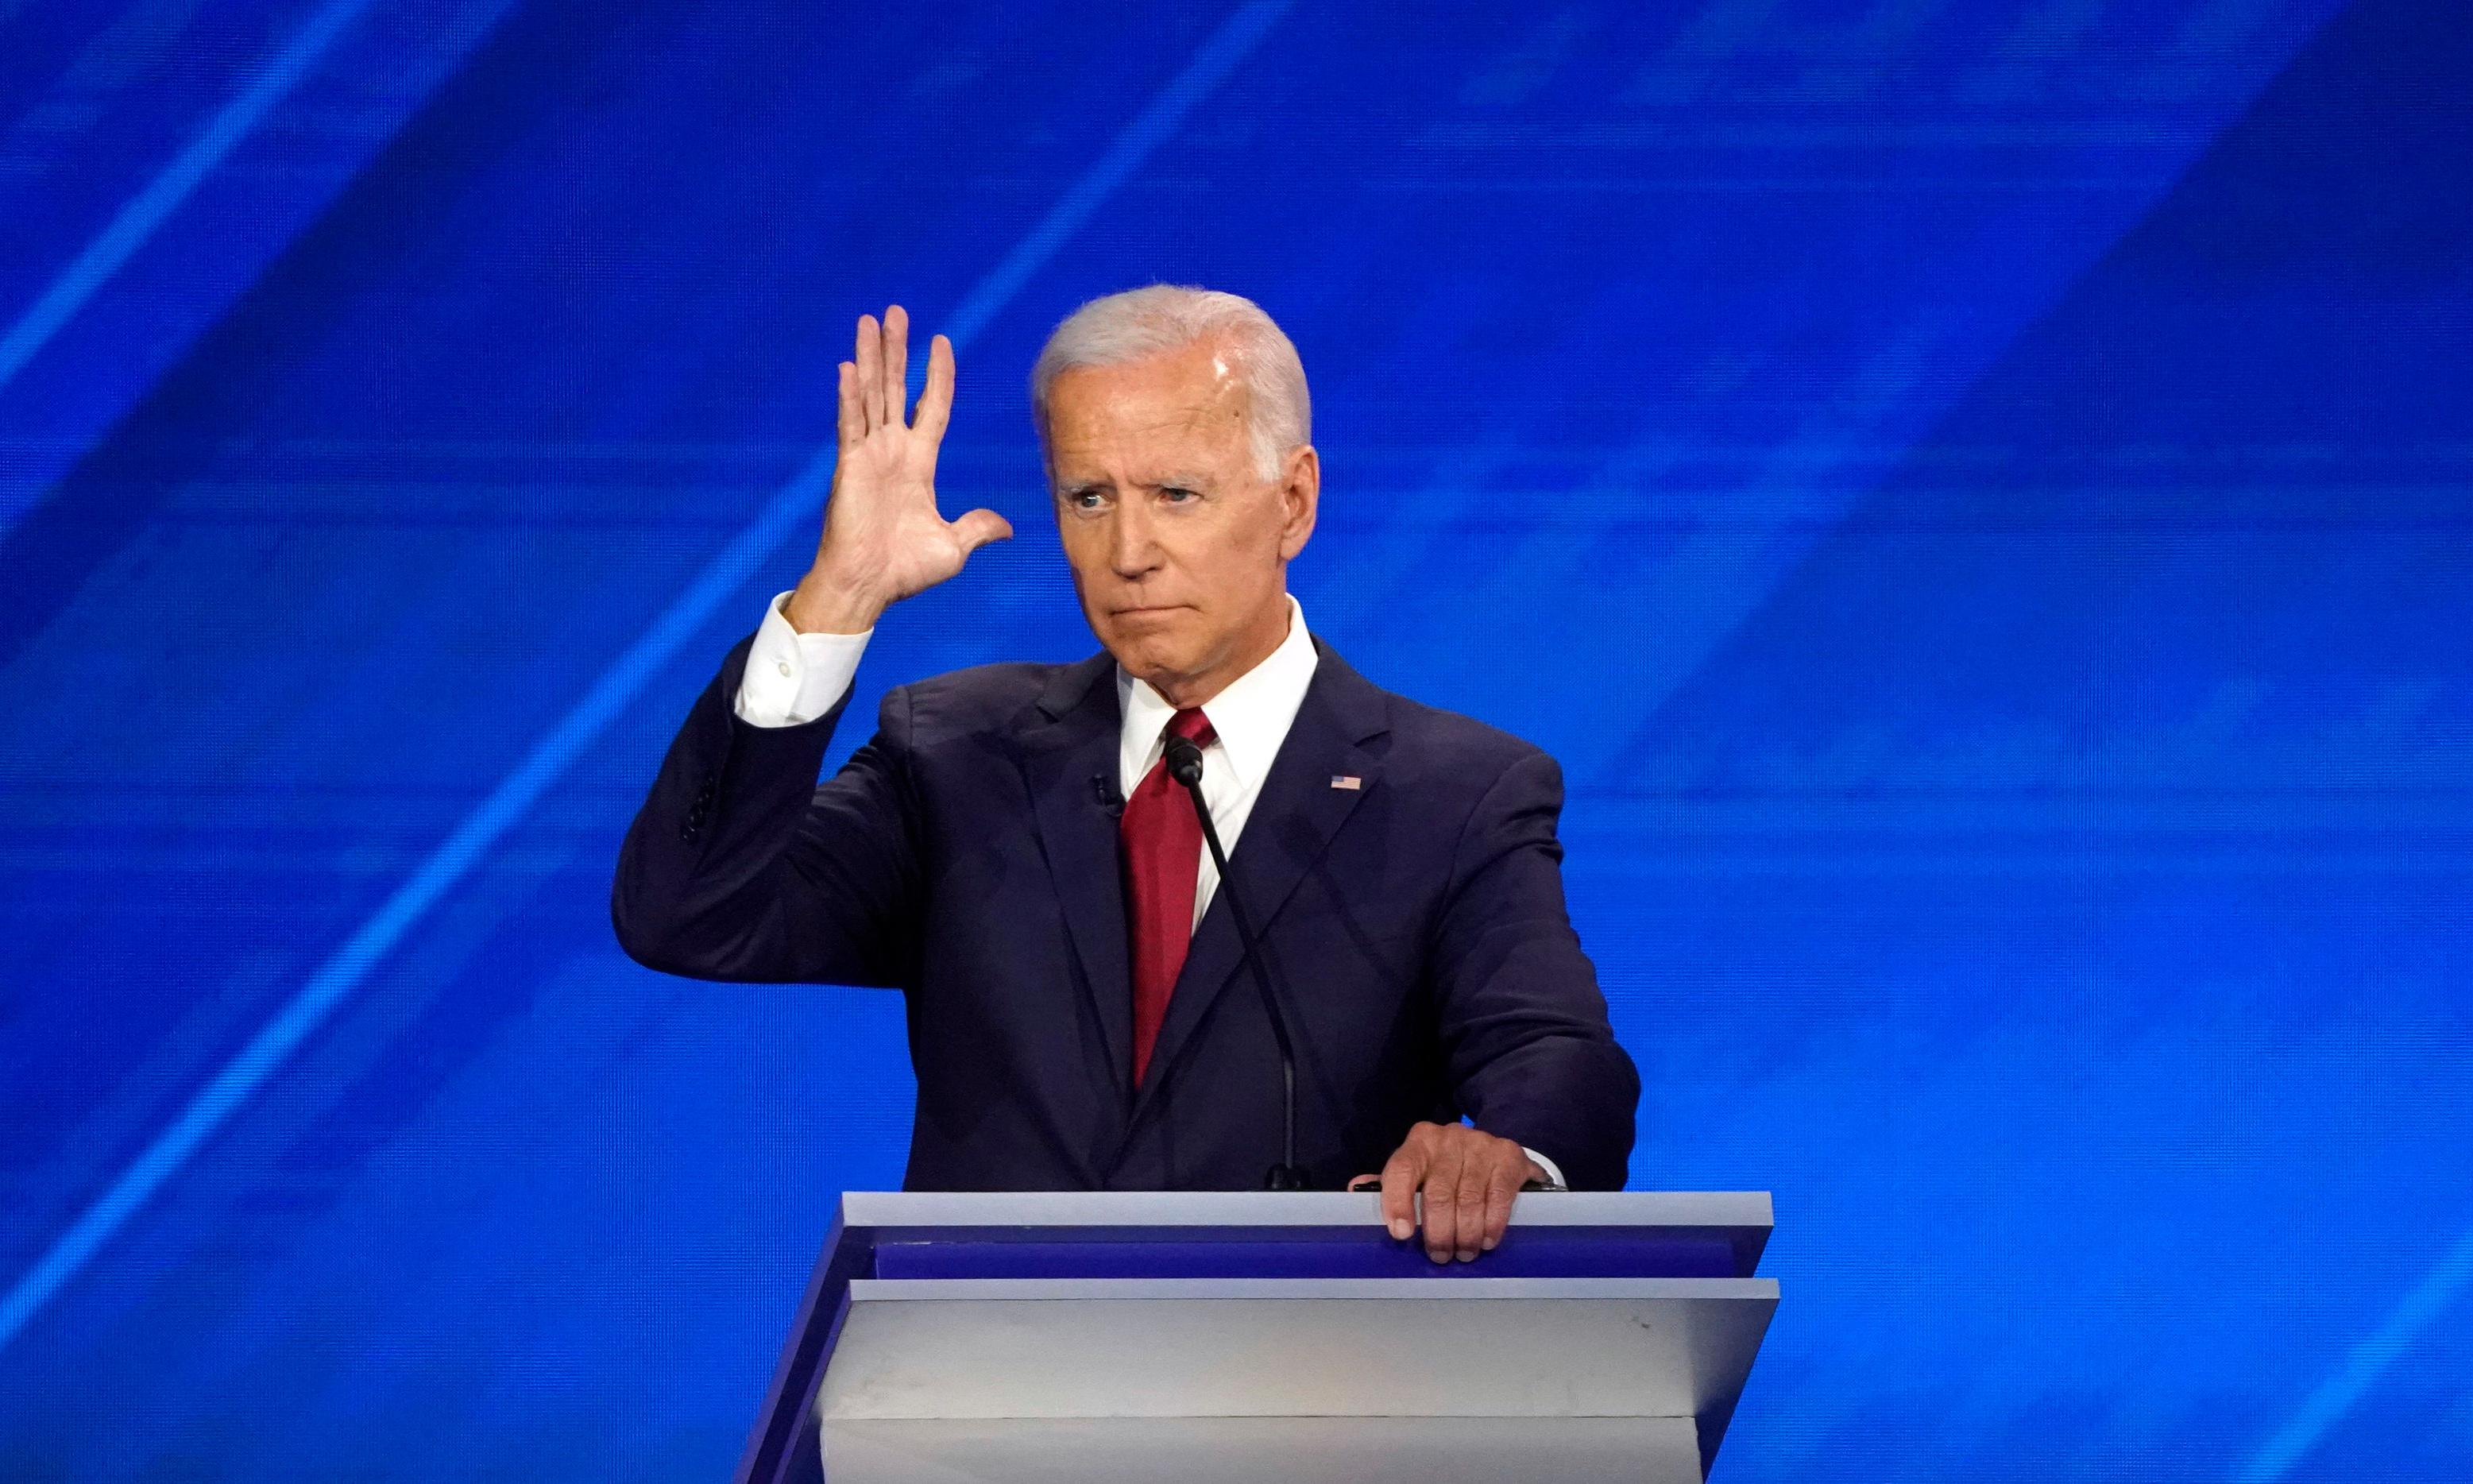 Joe Biden was both the strongest – and weakest – candidate on stage